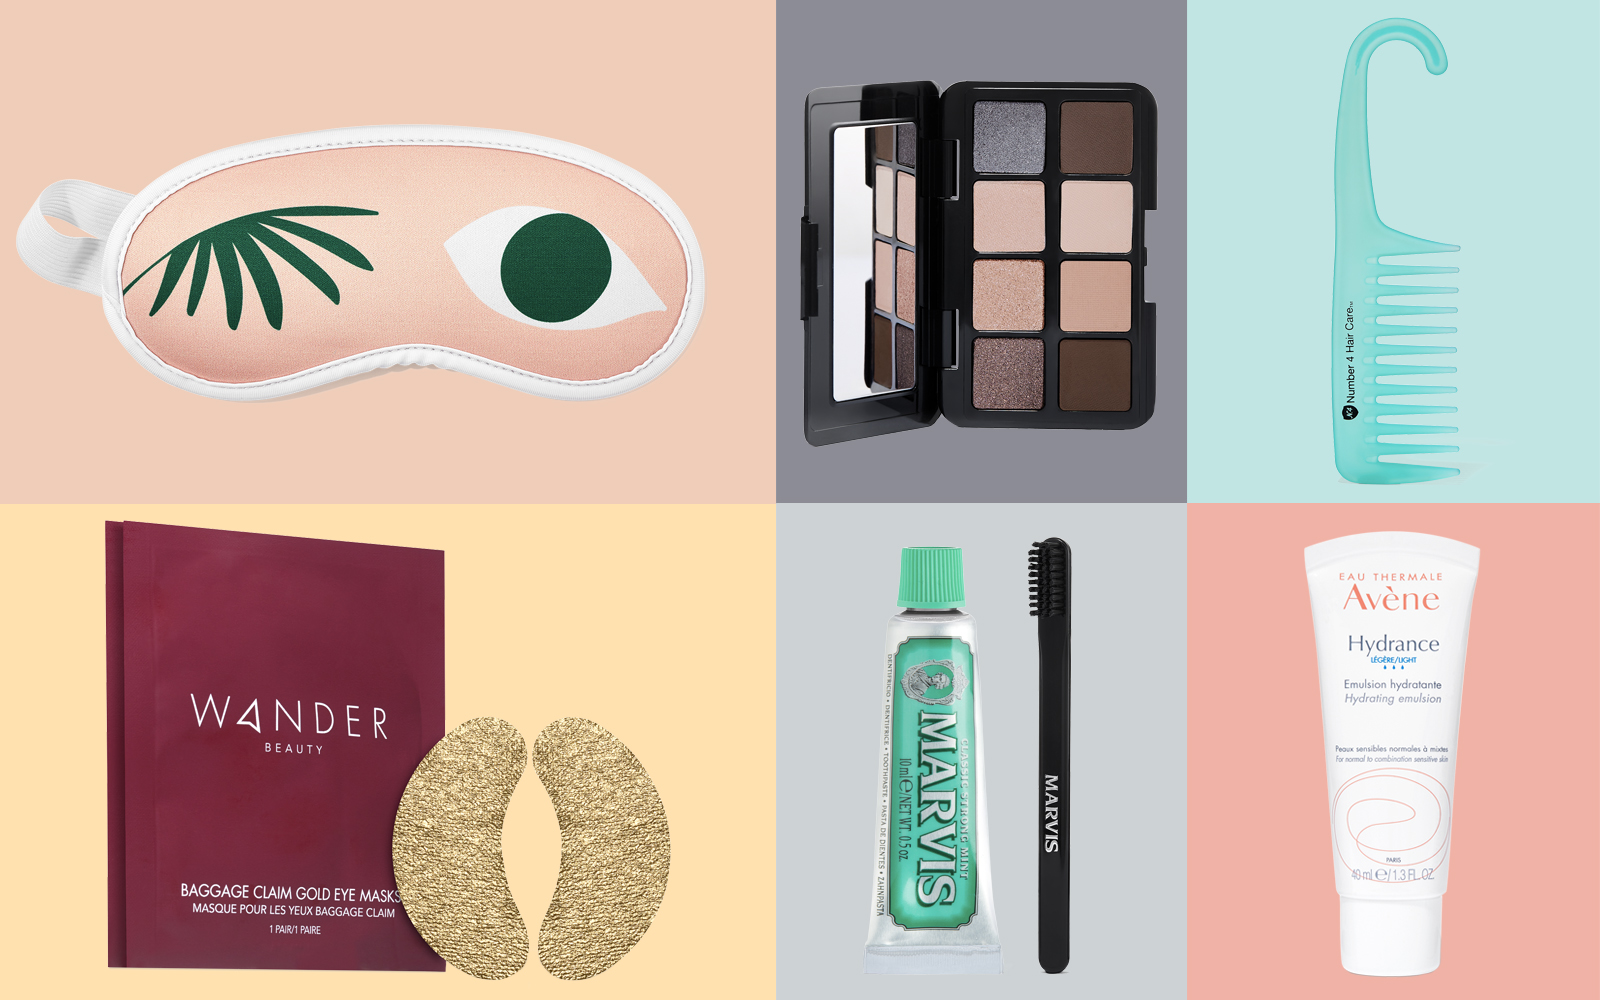 Birchbox Just Launched a Travel-ready Toiletry Kit Full of TSA-approved Essentials